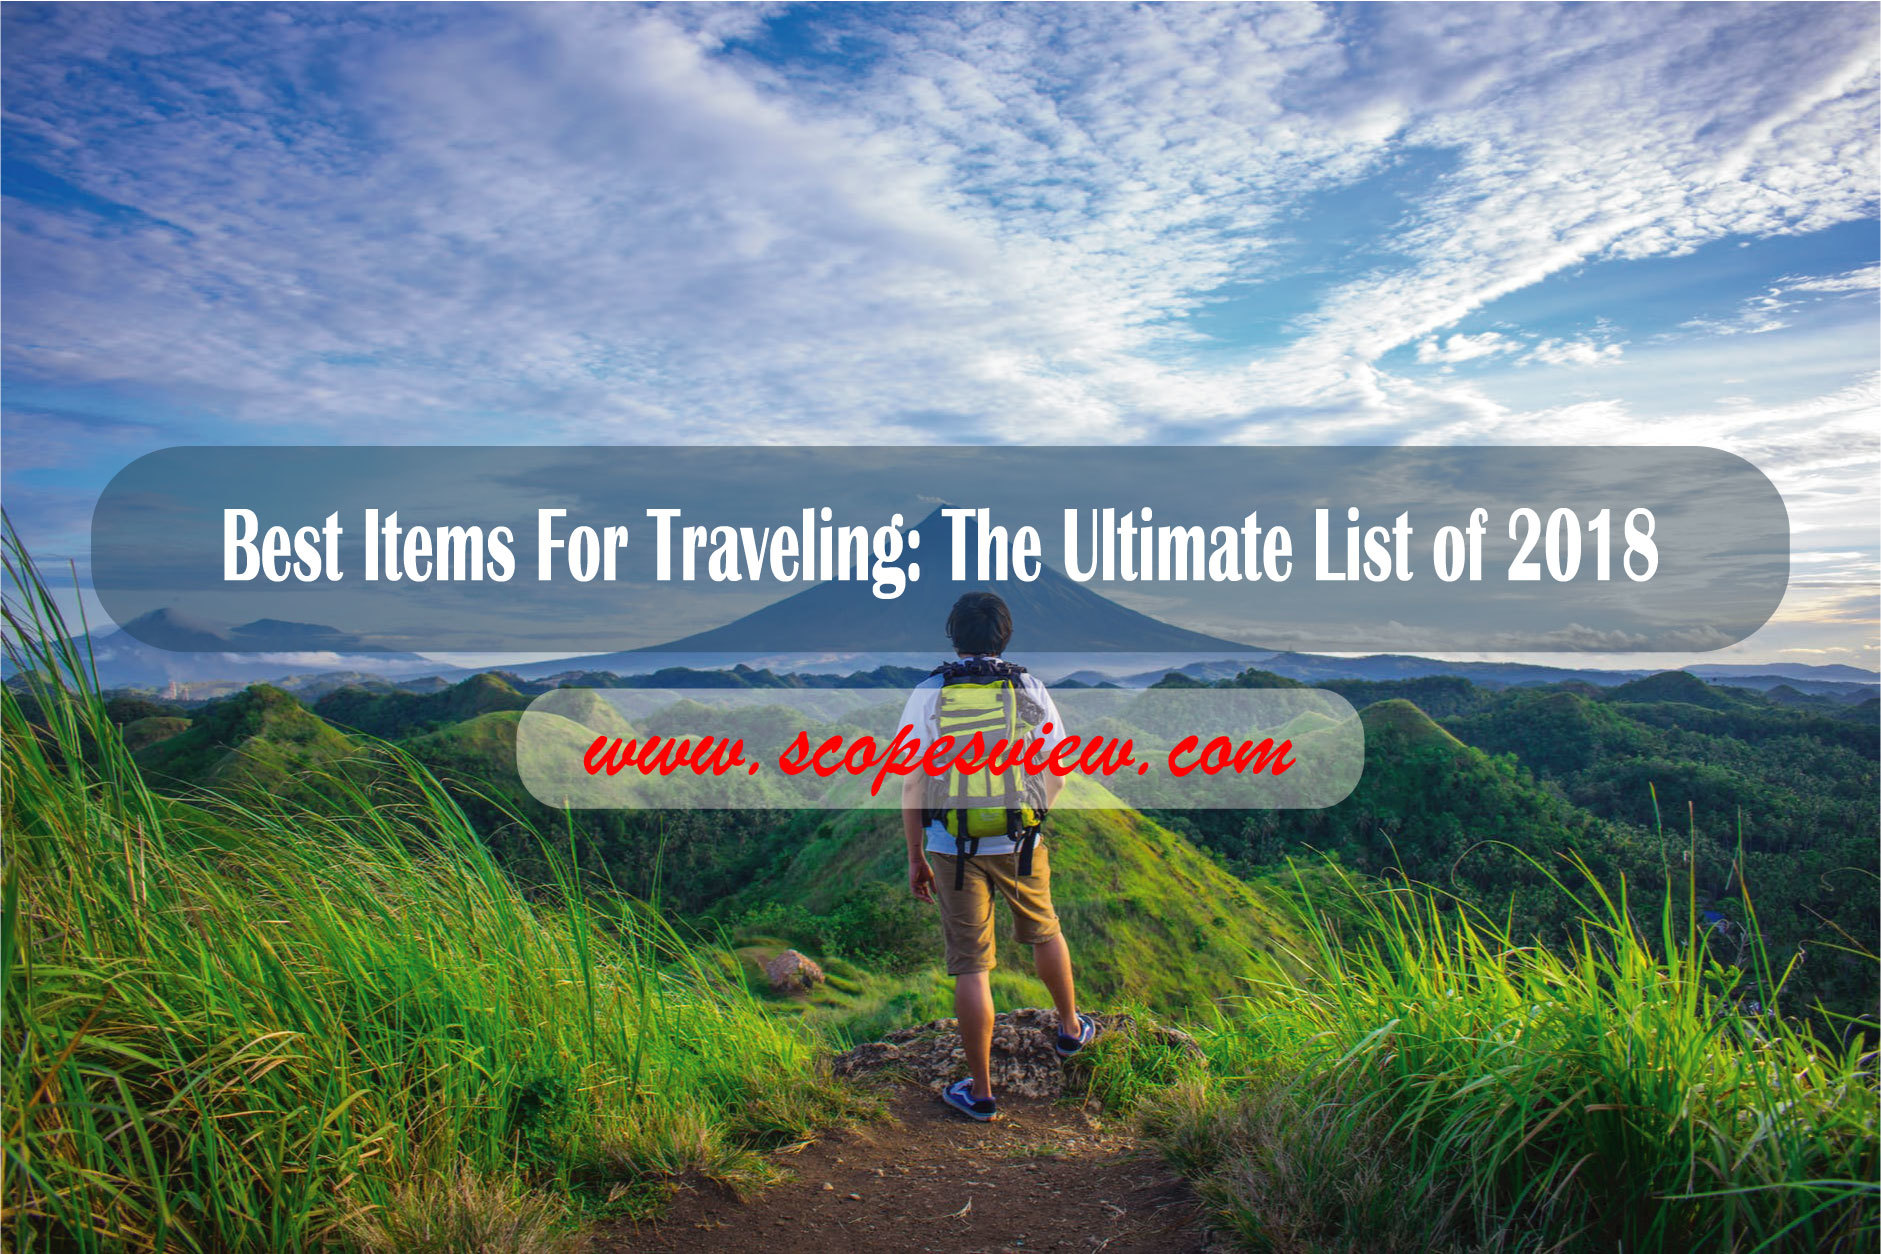 best items for traveling